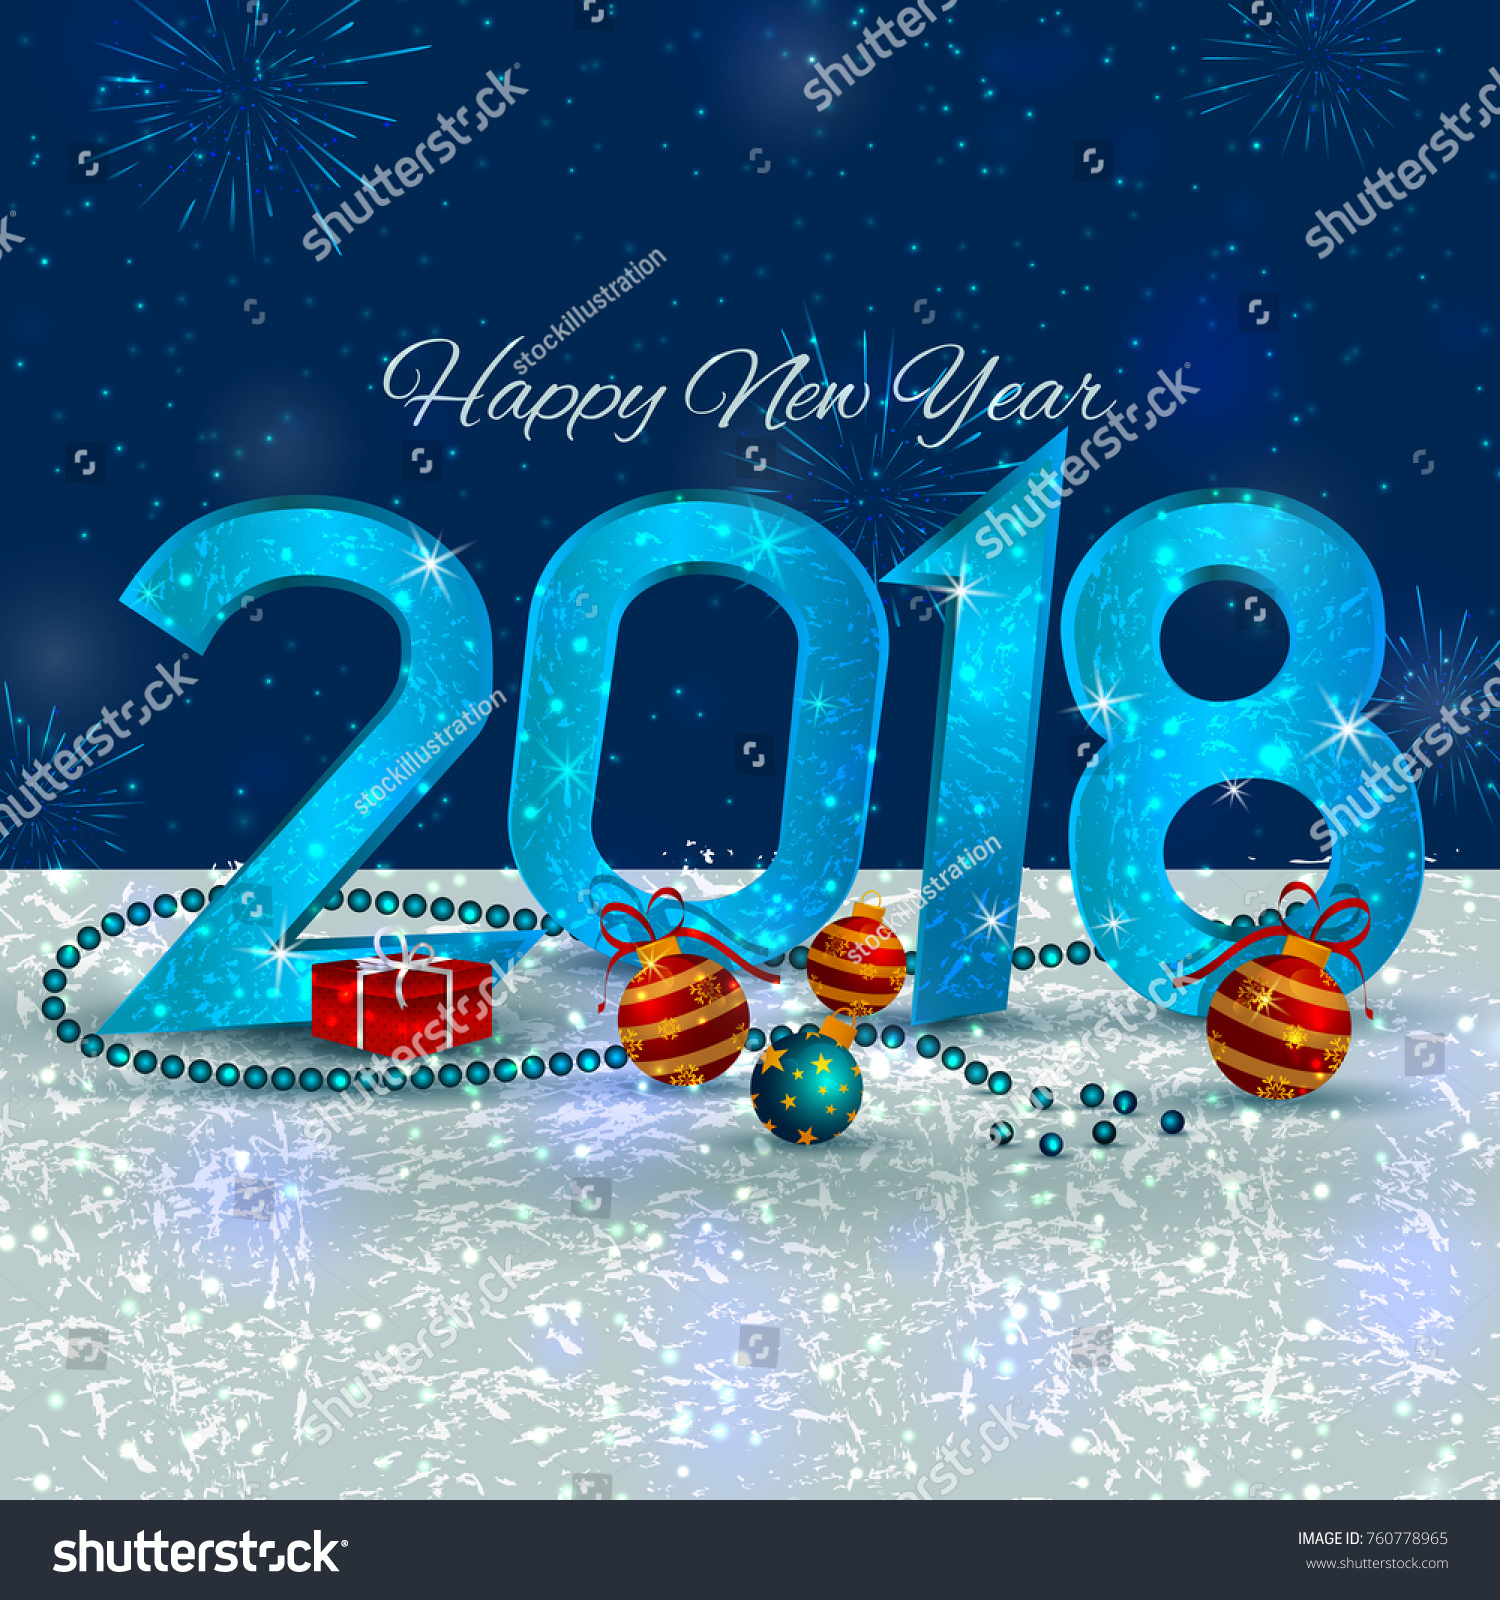 Happy New Year 2018 Wishes Greeting Stock Vector 2018 760778965